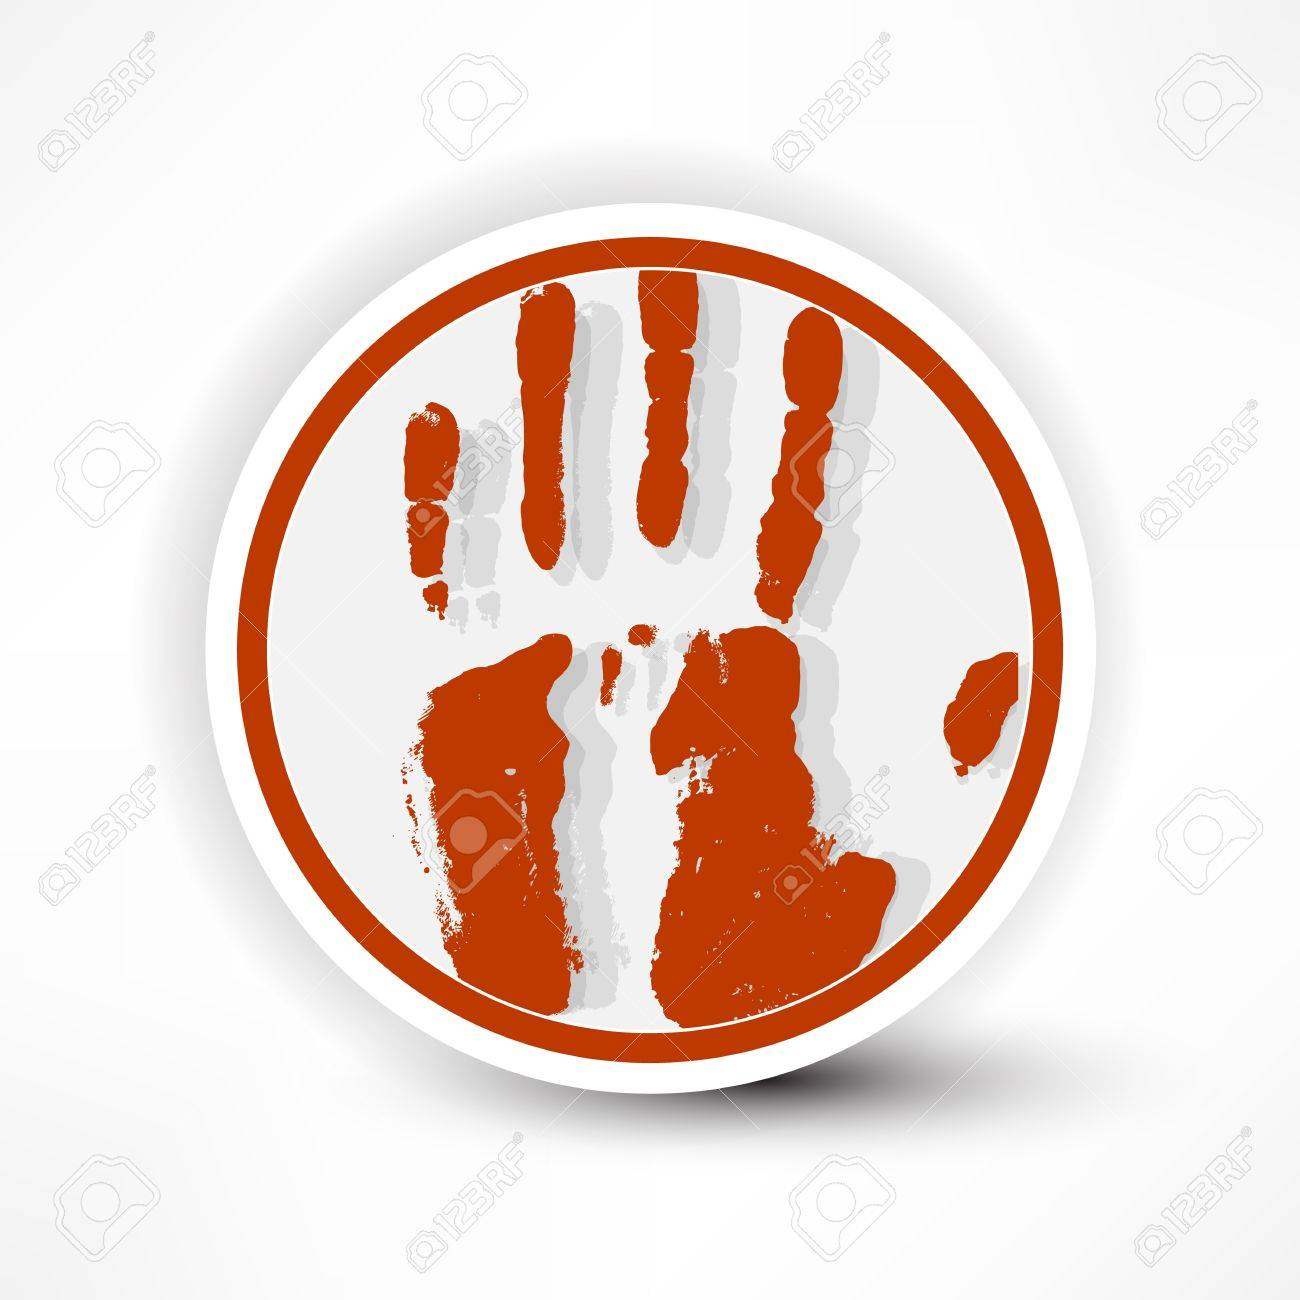 sign of the hand palm in red on a white background. Stock Vector - 14133964